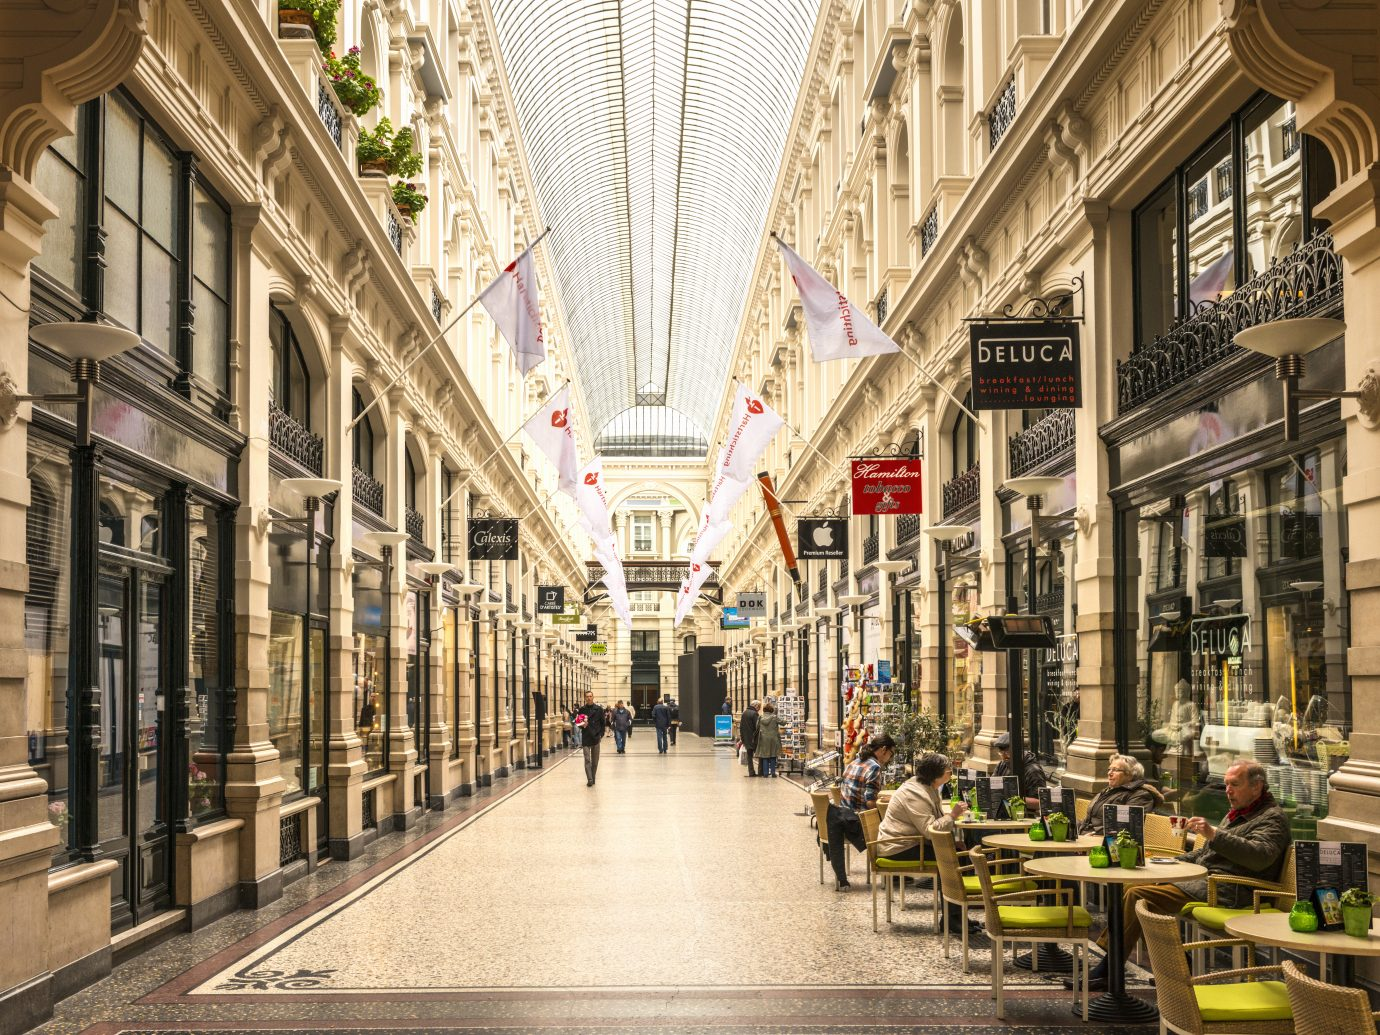 The Passage in The Hague Netherlands